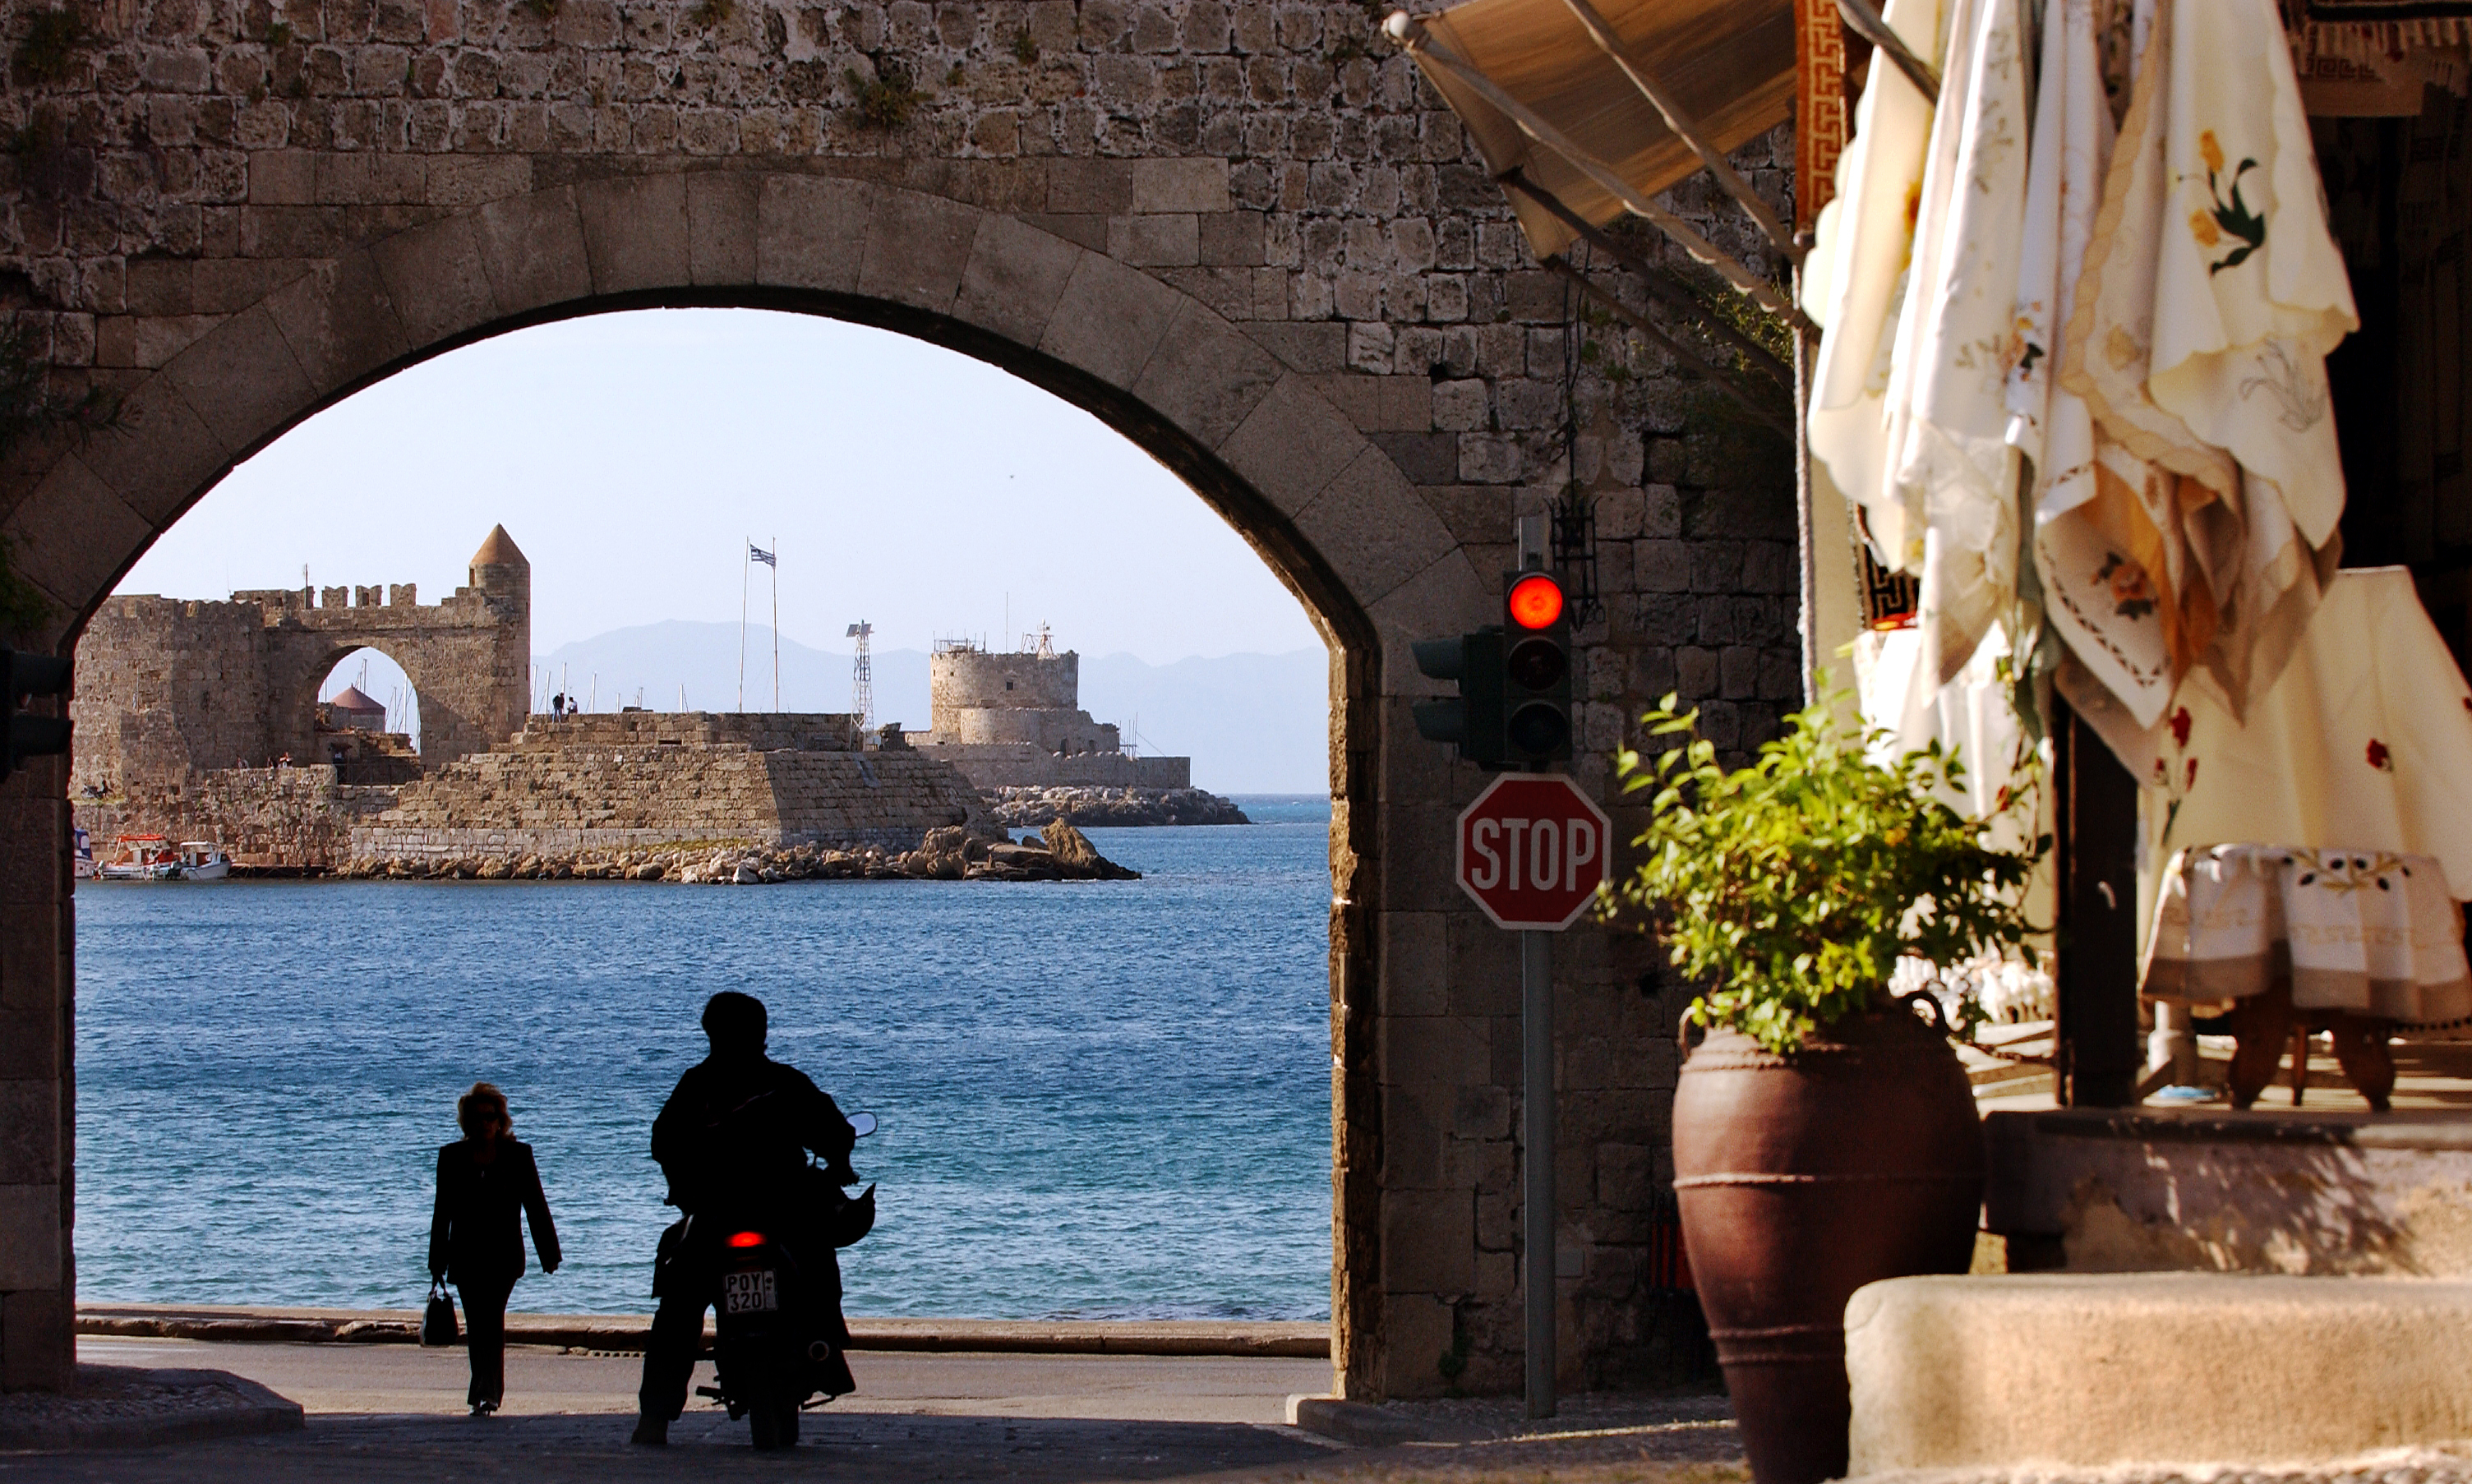 Rhodes reconstruction project will be a colossal gamble for Greece | Kate Williams